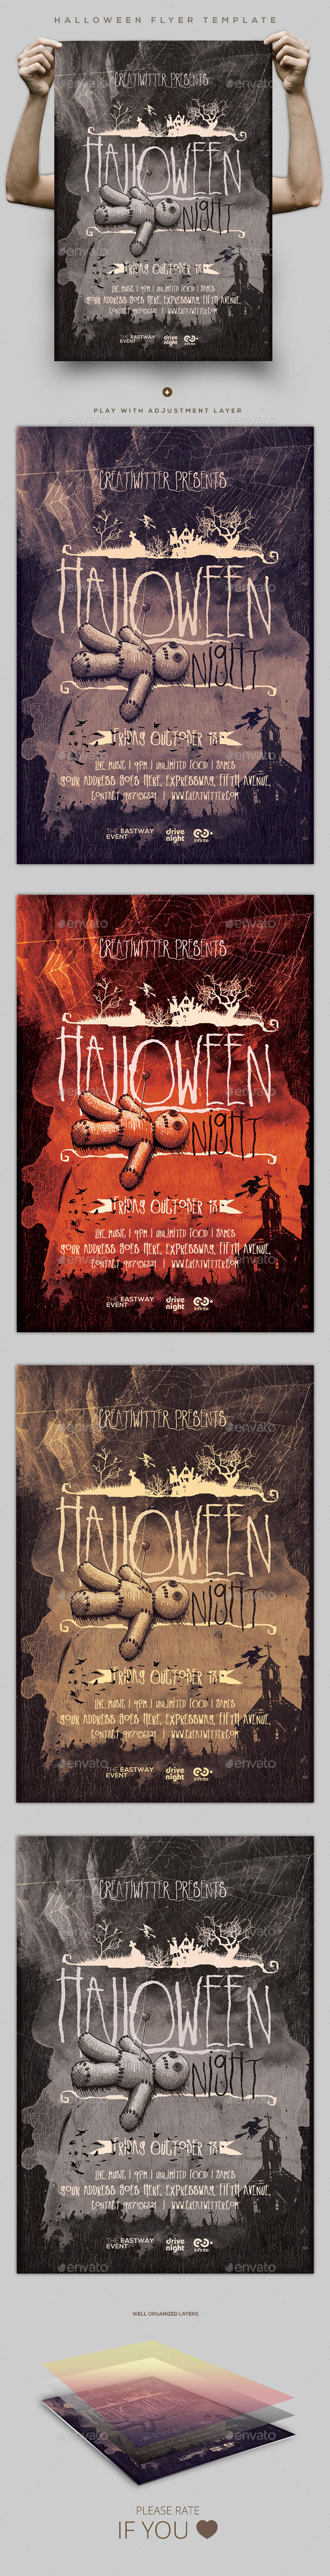 Halloween Flyer Template by Creatwitter (Halloween party flyer)